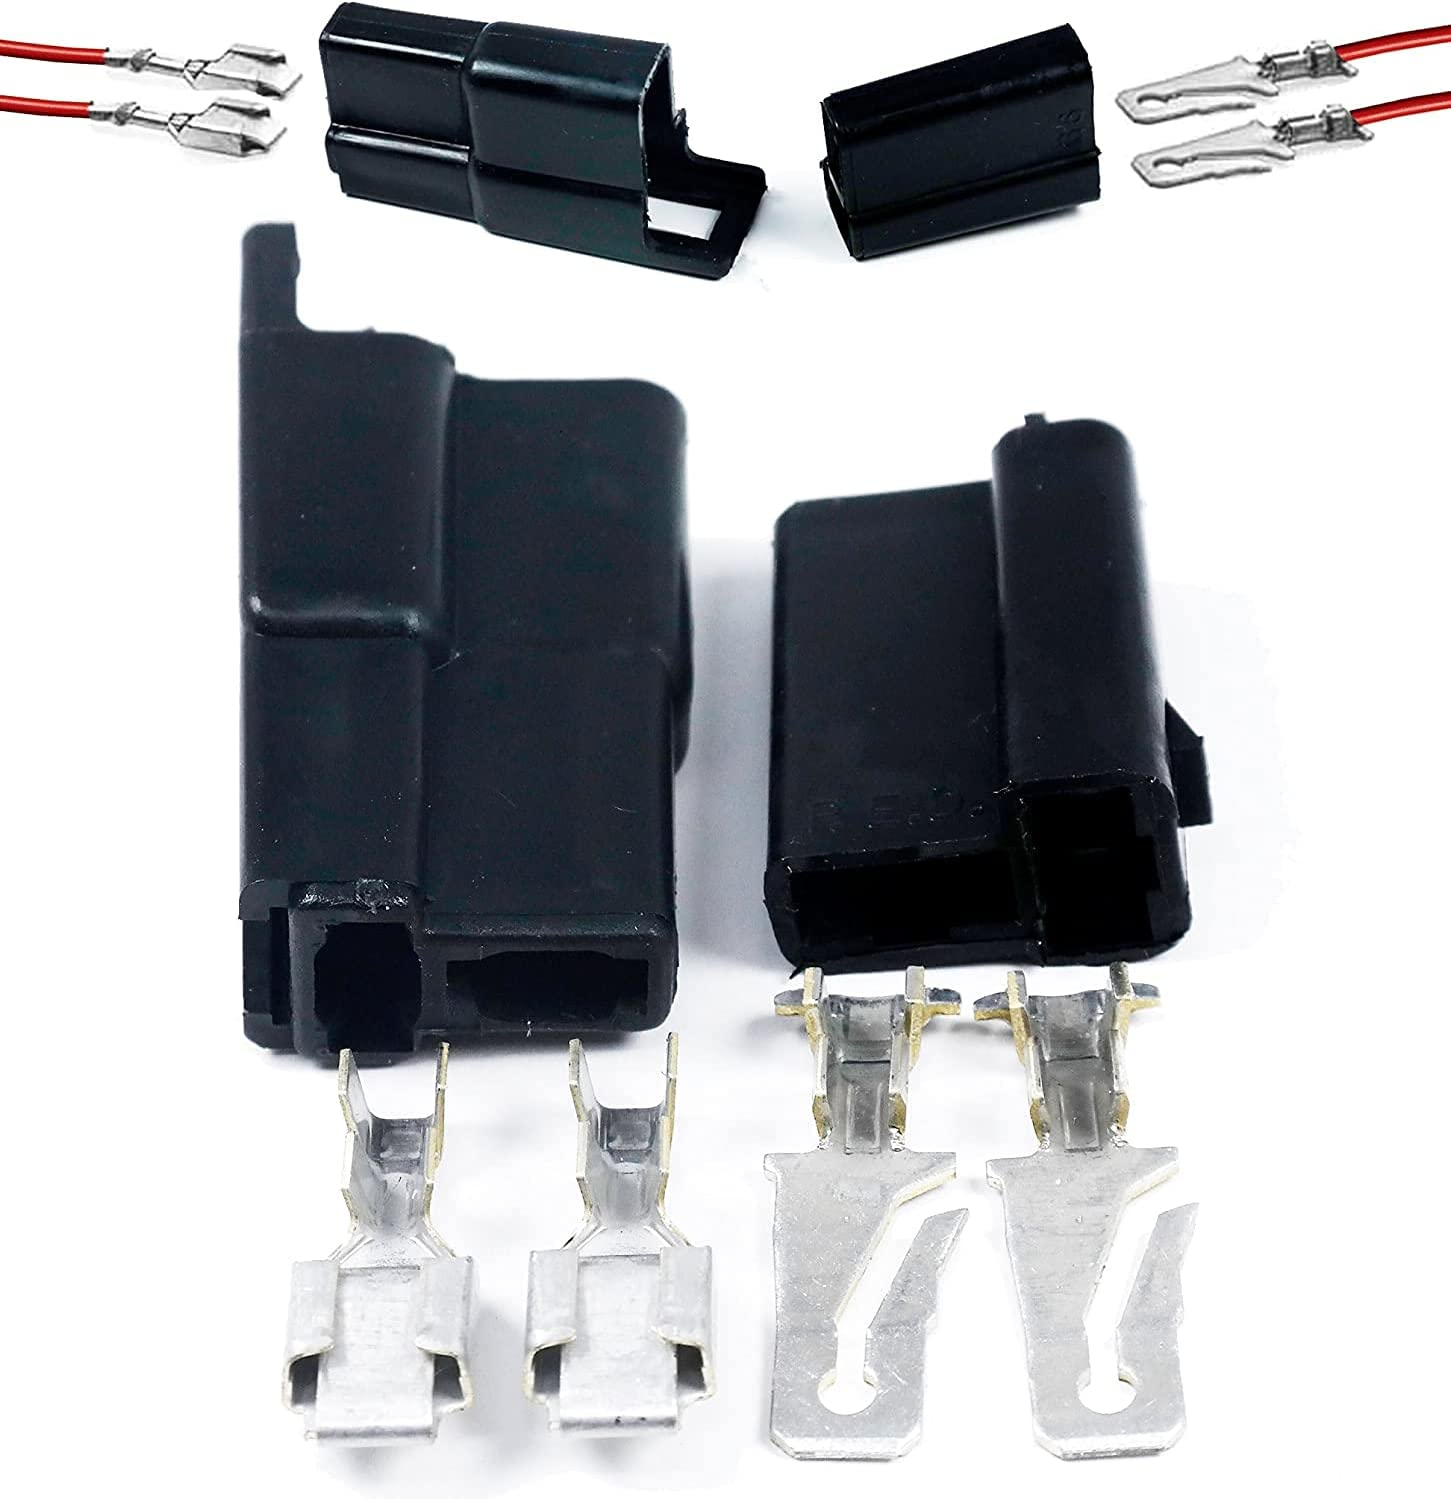 Delphi Metri-Pack 56 Max 73% OFF Series 2 Popular product Pin Male 14-16 w AWG and Connector